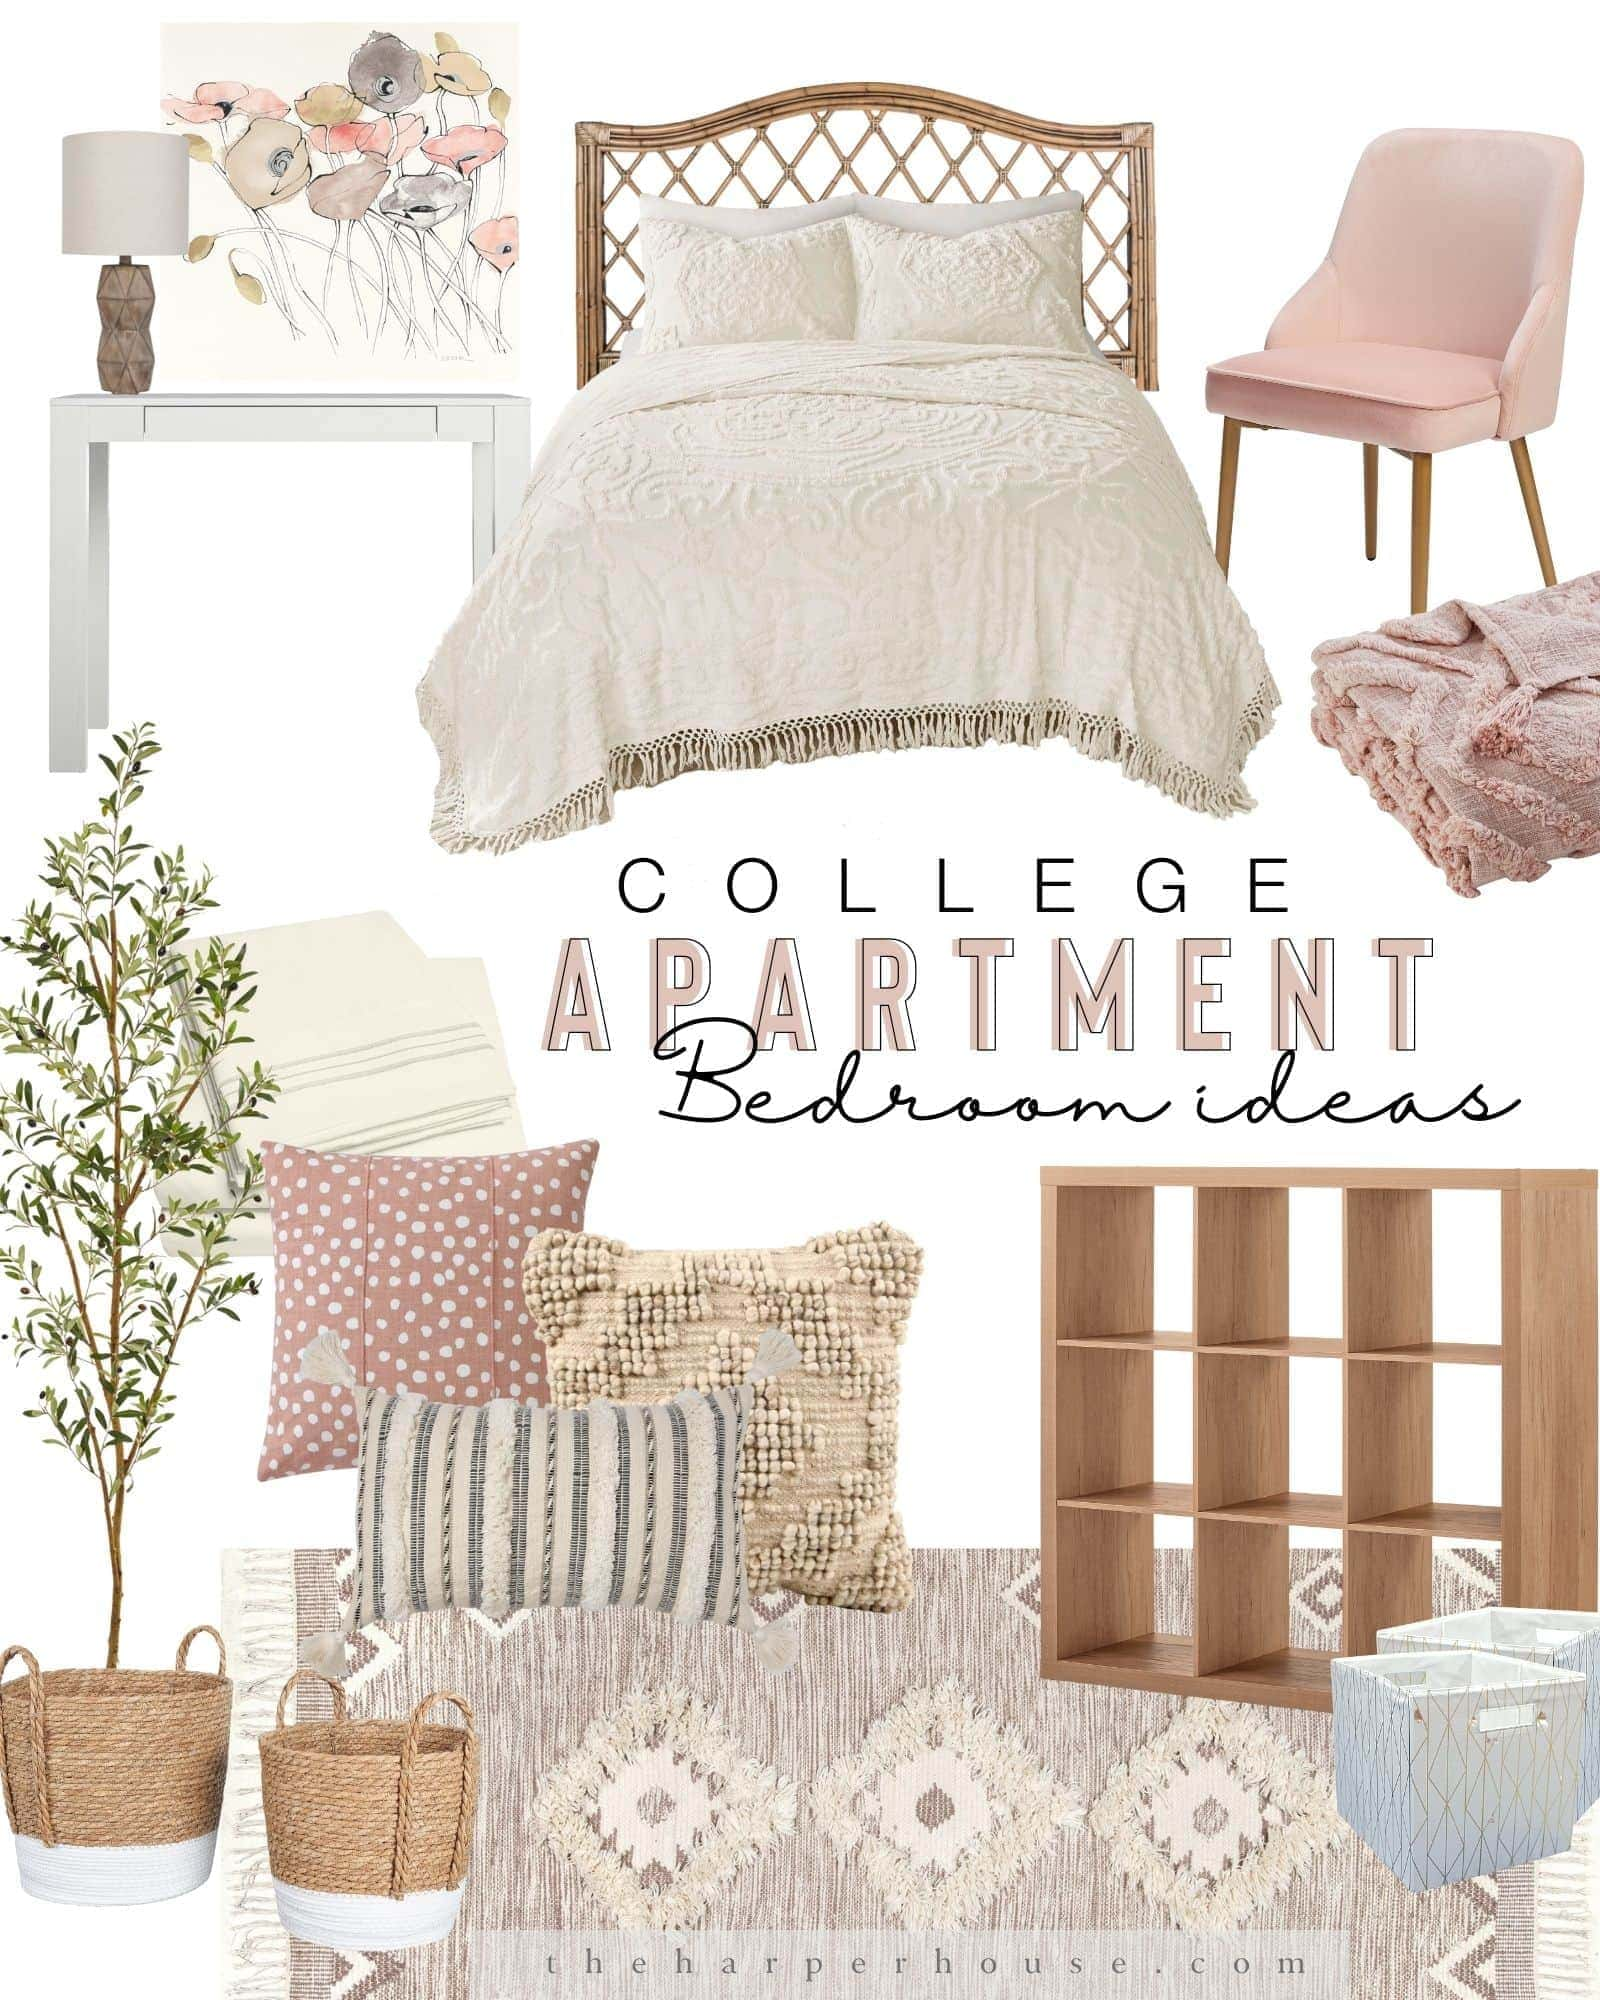 Boho bedroom decor for your college dorm or apartment. Cheap and easy decorating ideas for small bedrooms featuring rattan / wicker headboard, chenille bedding , small desk and textured moroccan area rug and faux olive tree